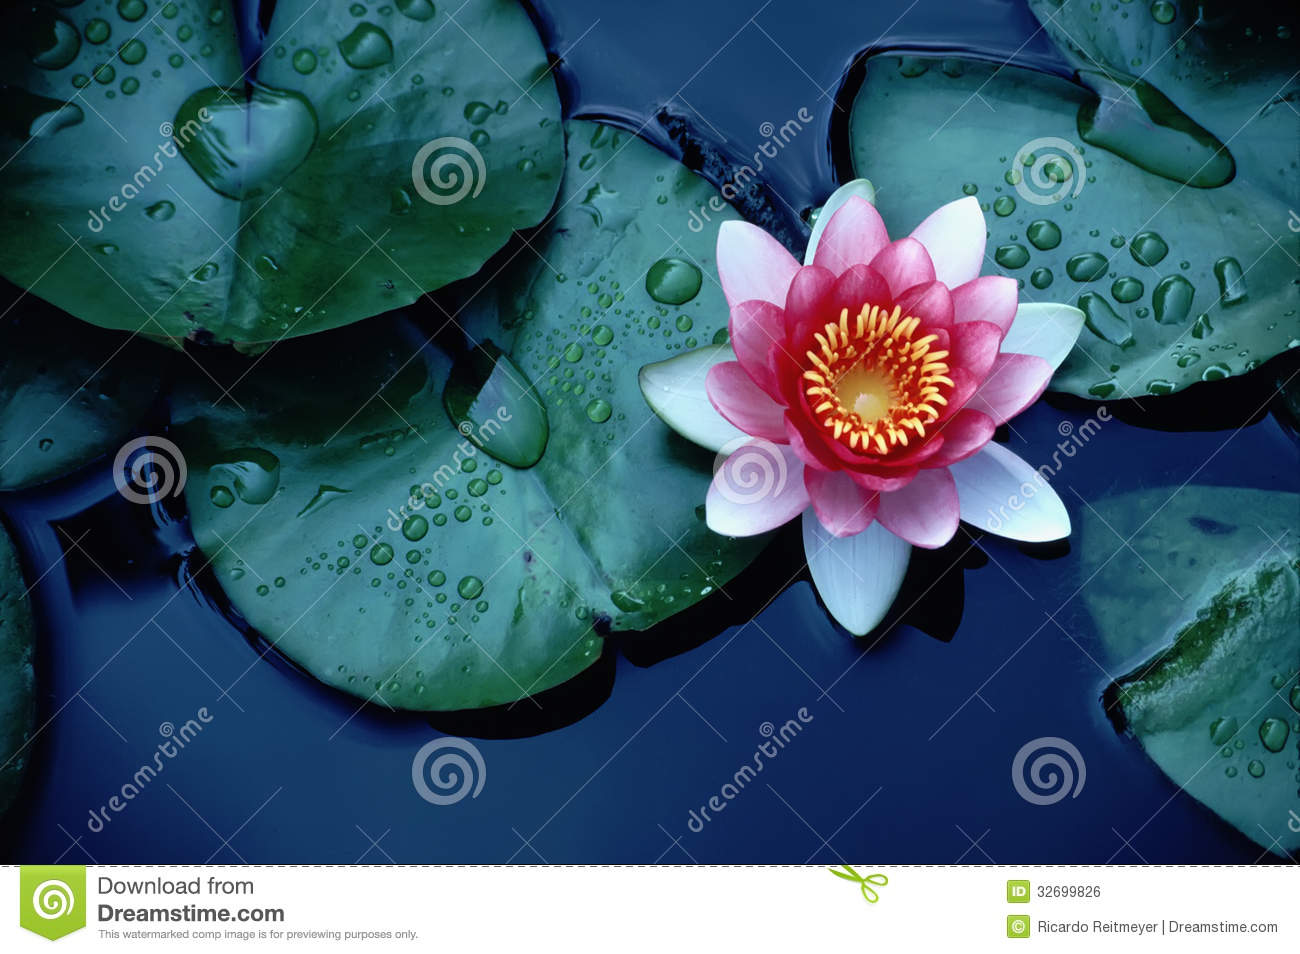 Brightly colored water lily or lotus flower floati stock photo brightly colored water lily or lotus flower floati izmirmasajfo